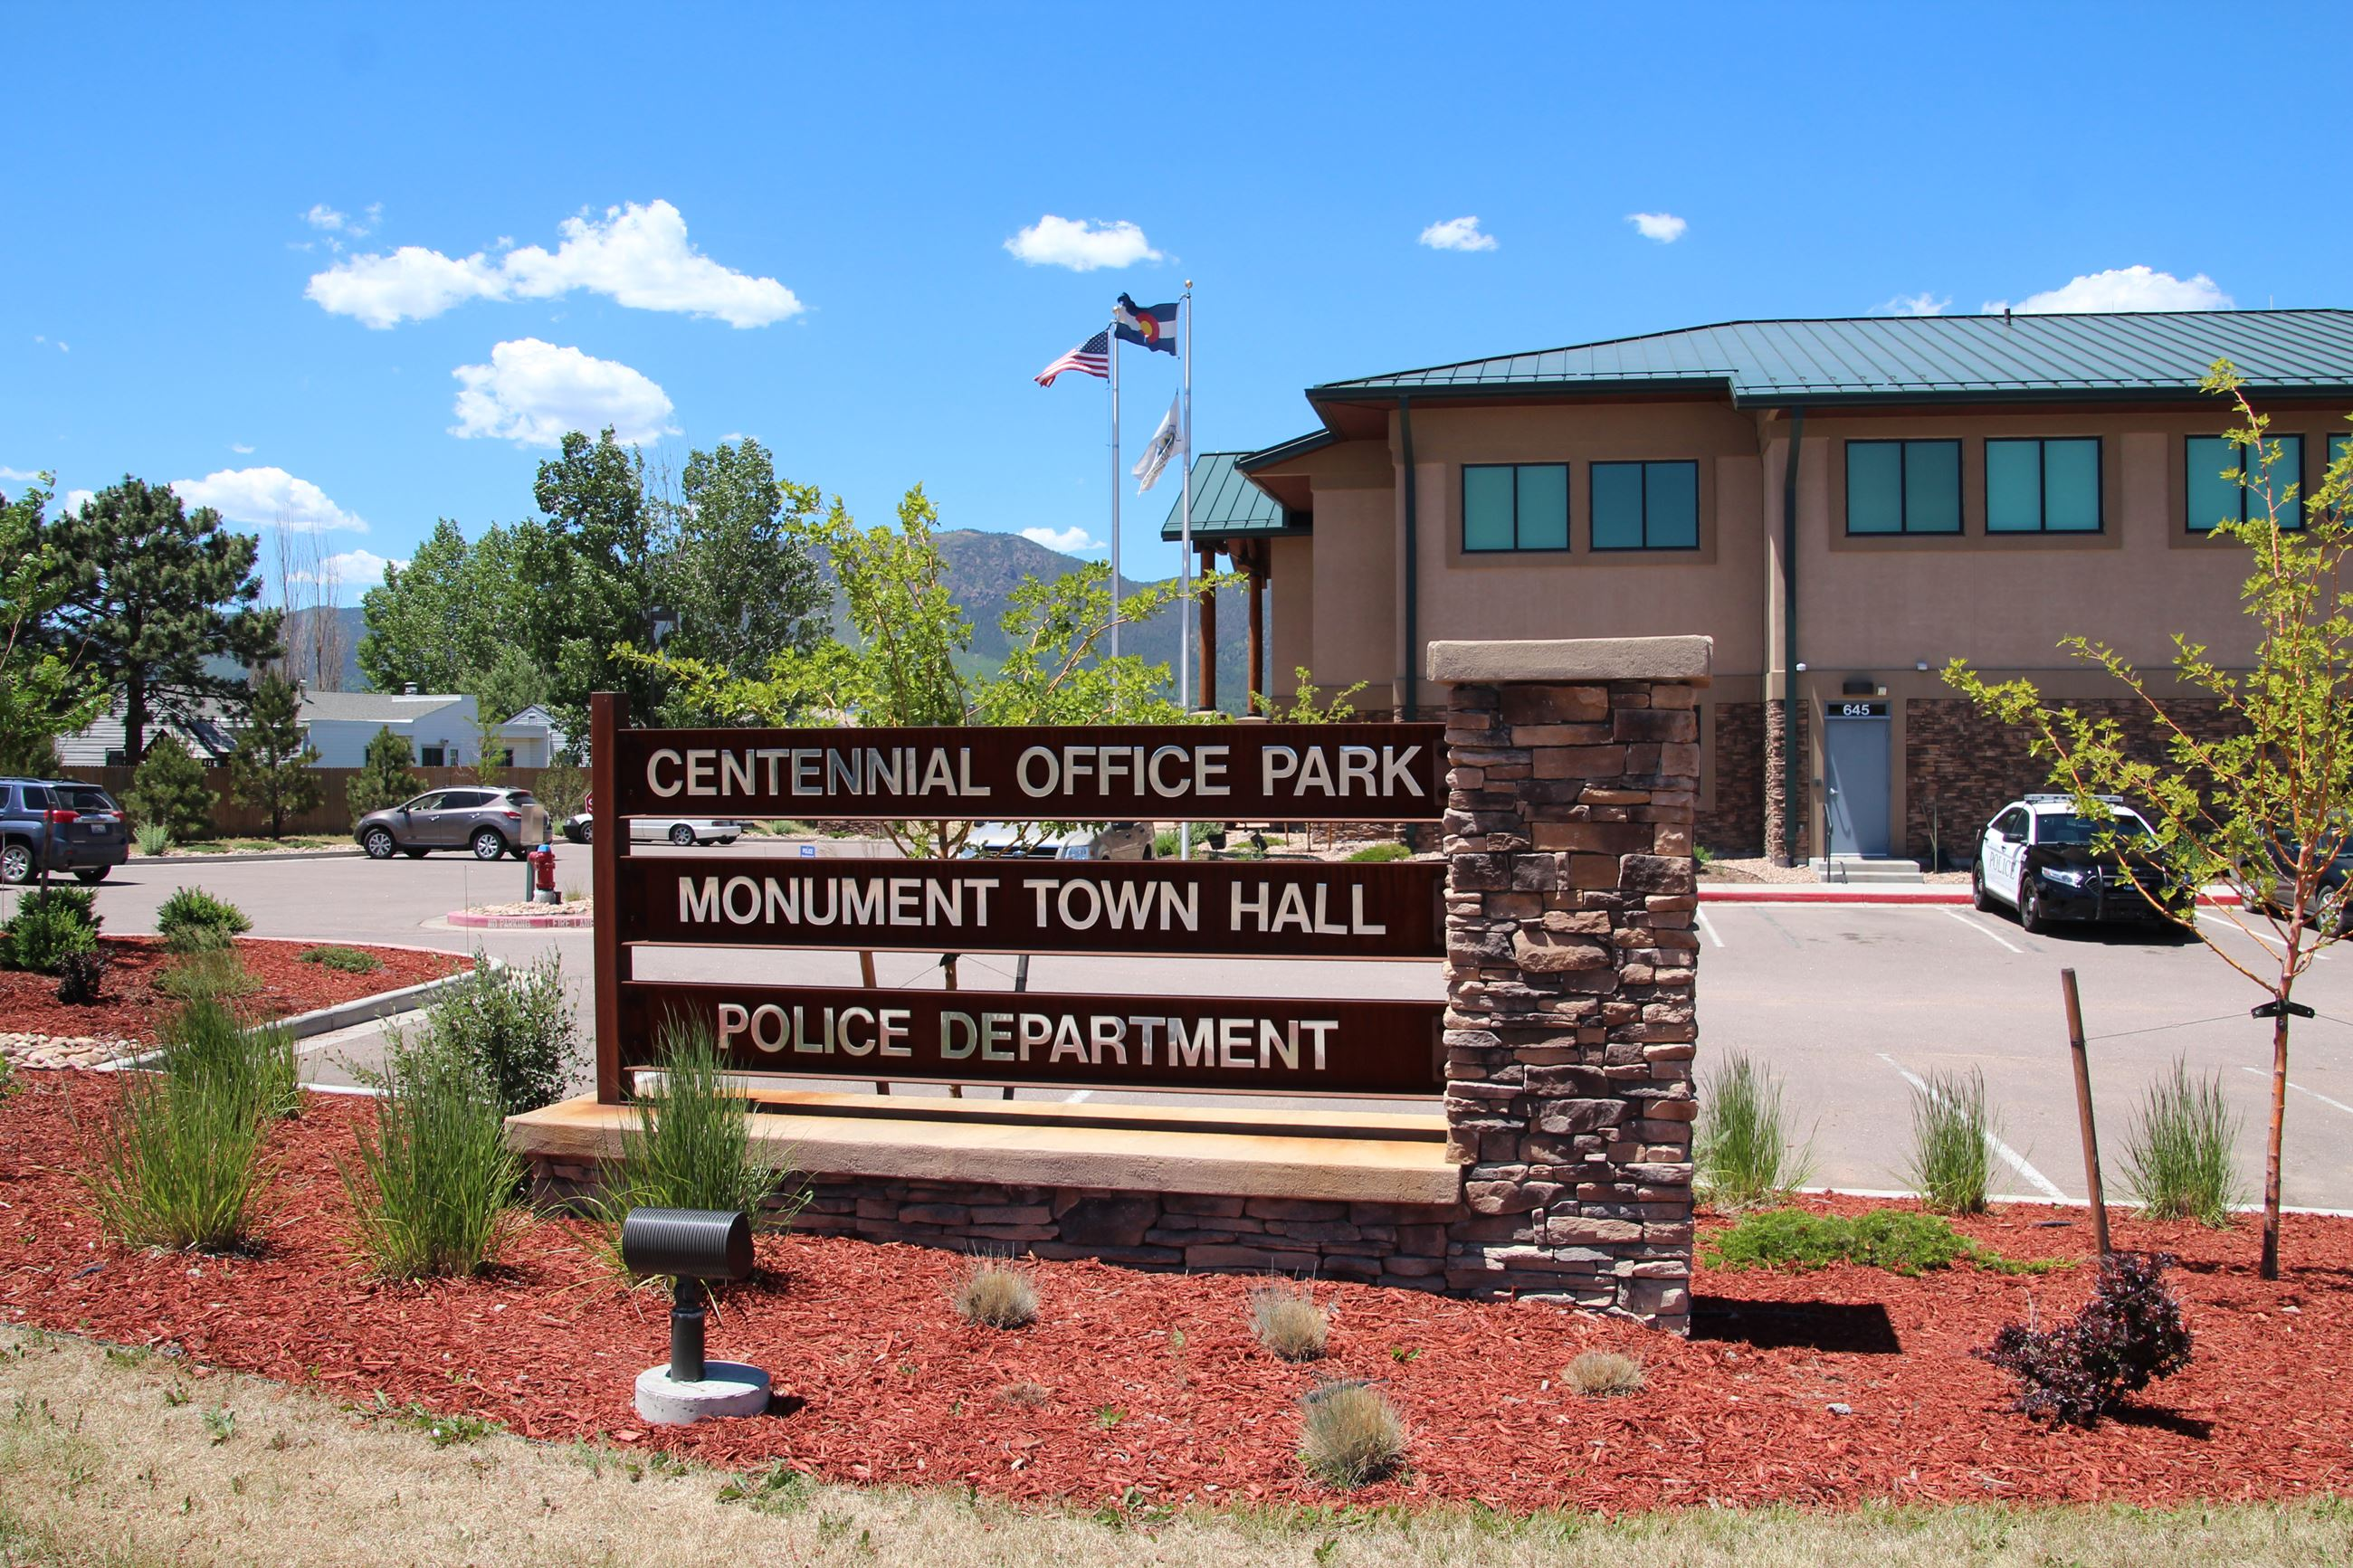 Monument Town Hall & Police Department